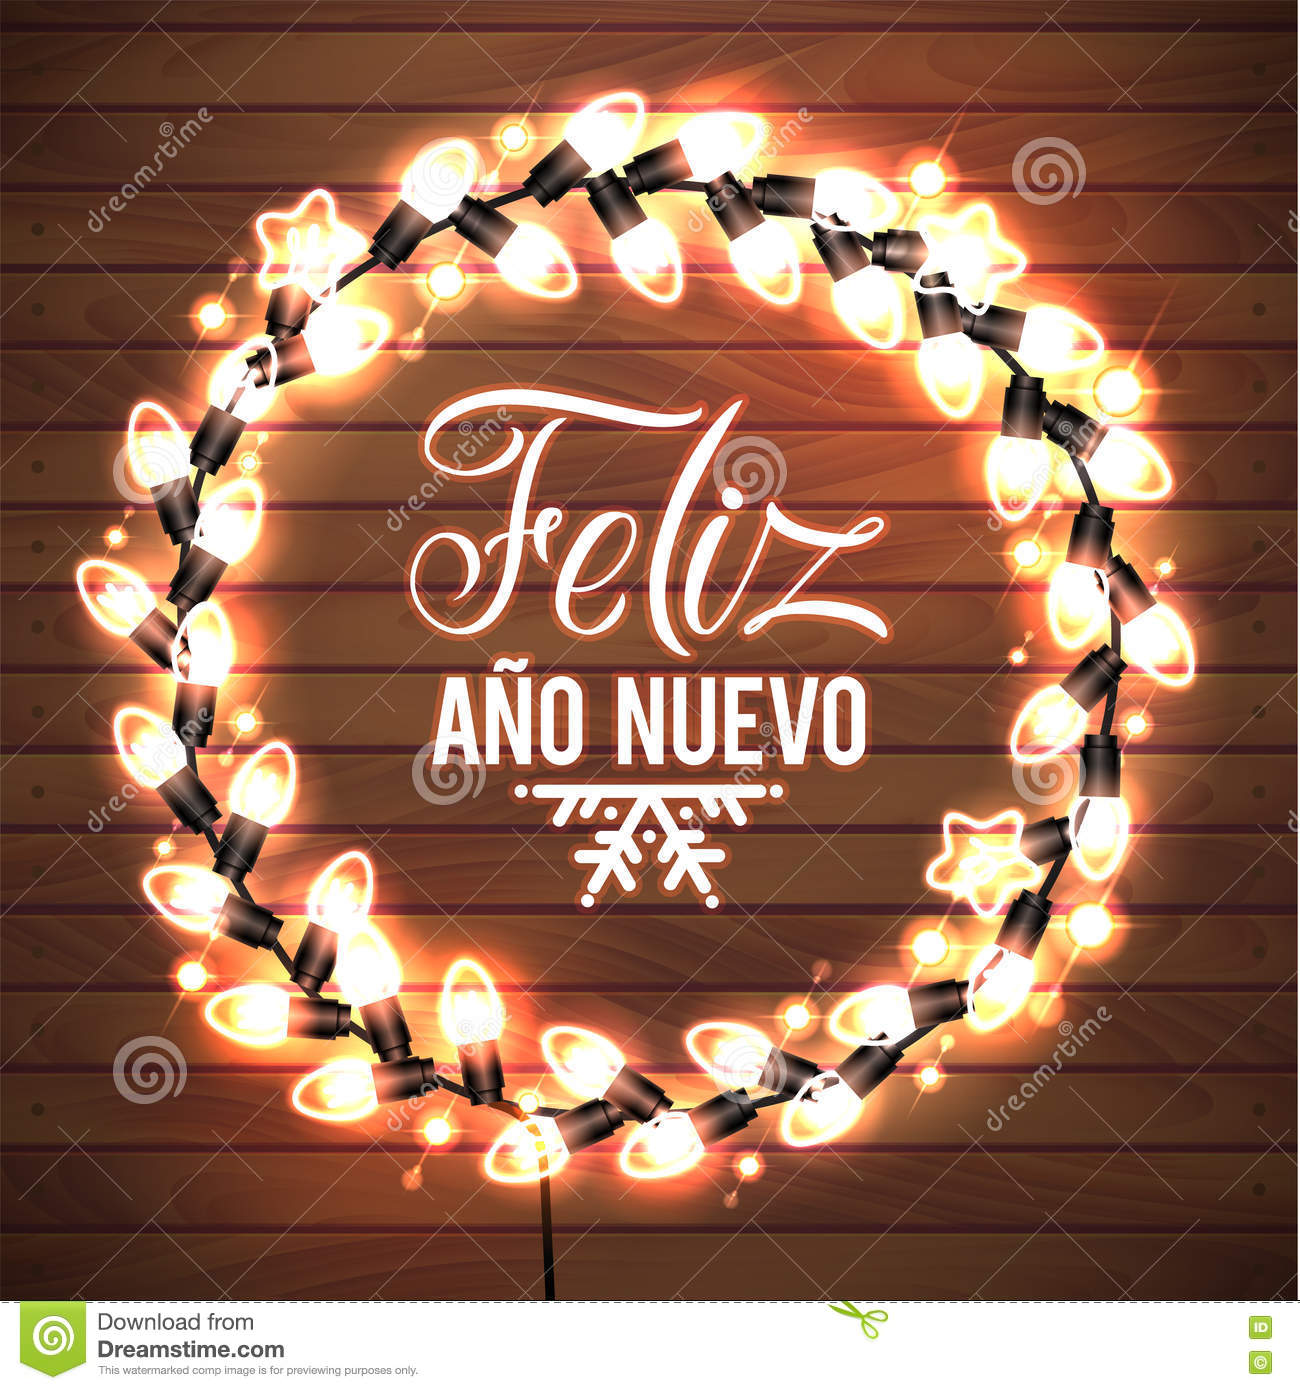 happy new year spanish language poster glowing christmas lights wreath for xmas holiday greeting card